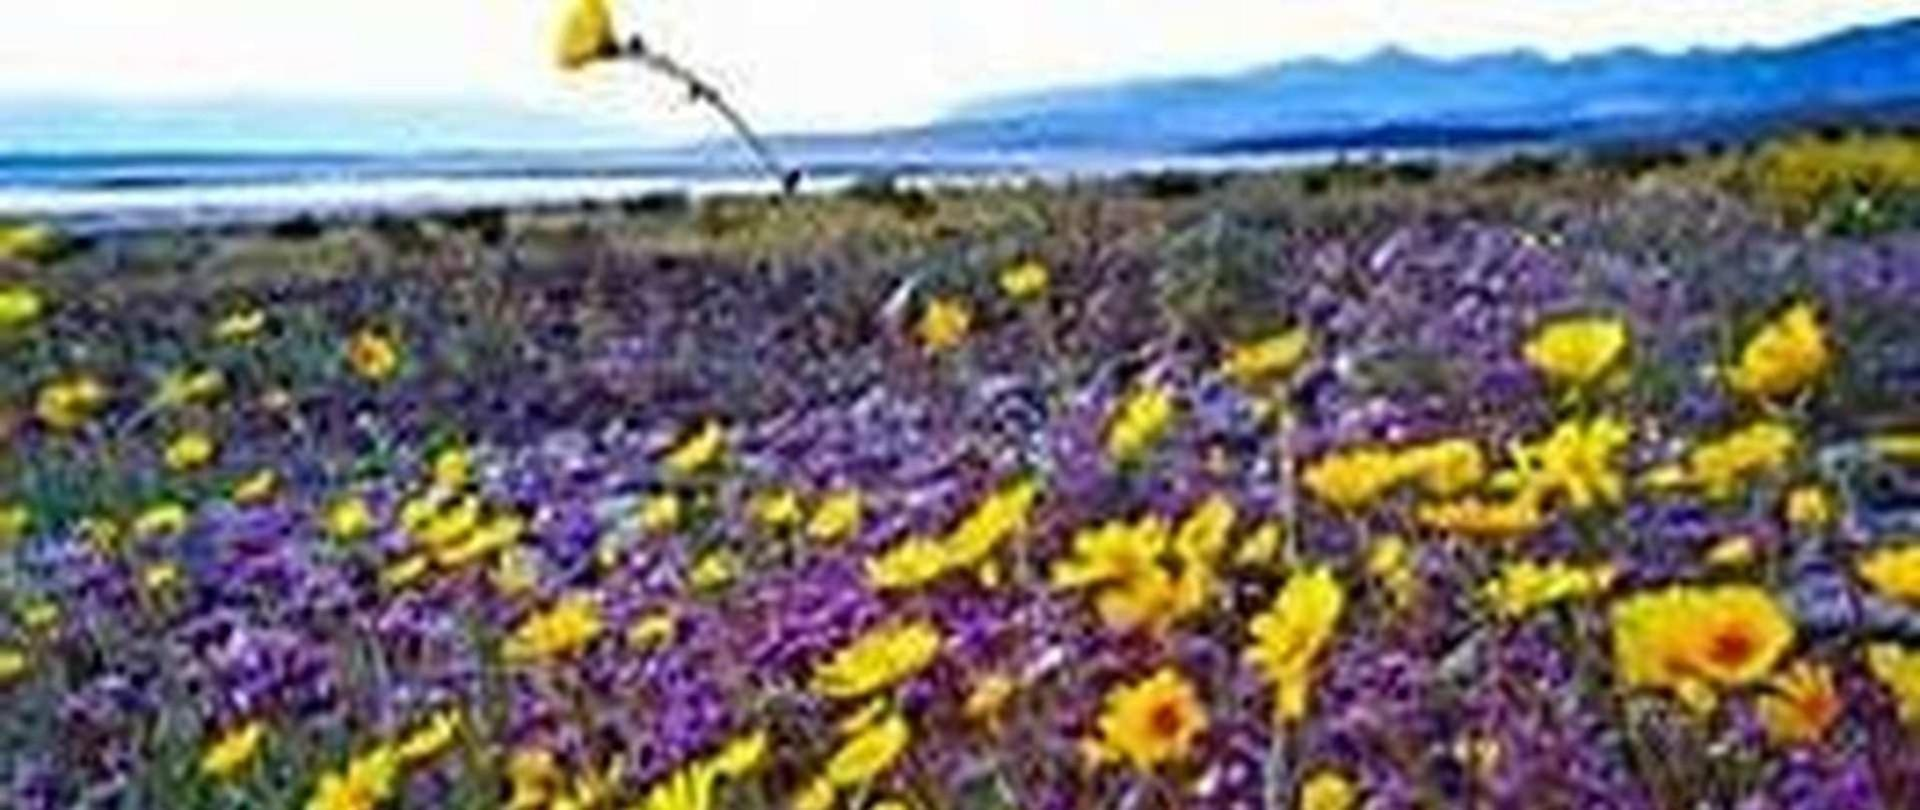 death-valley-super-bloom-2-jpg.jpeg